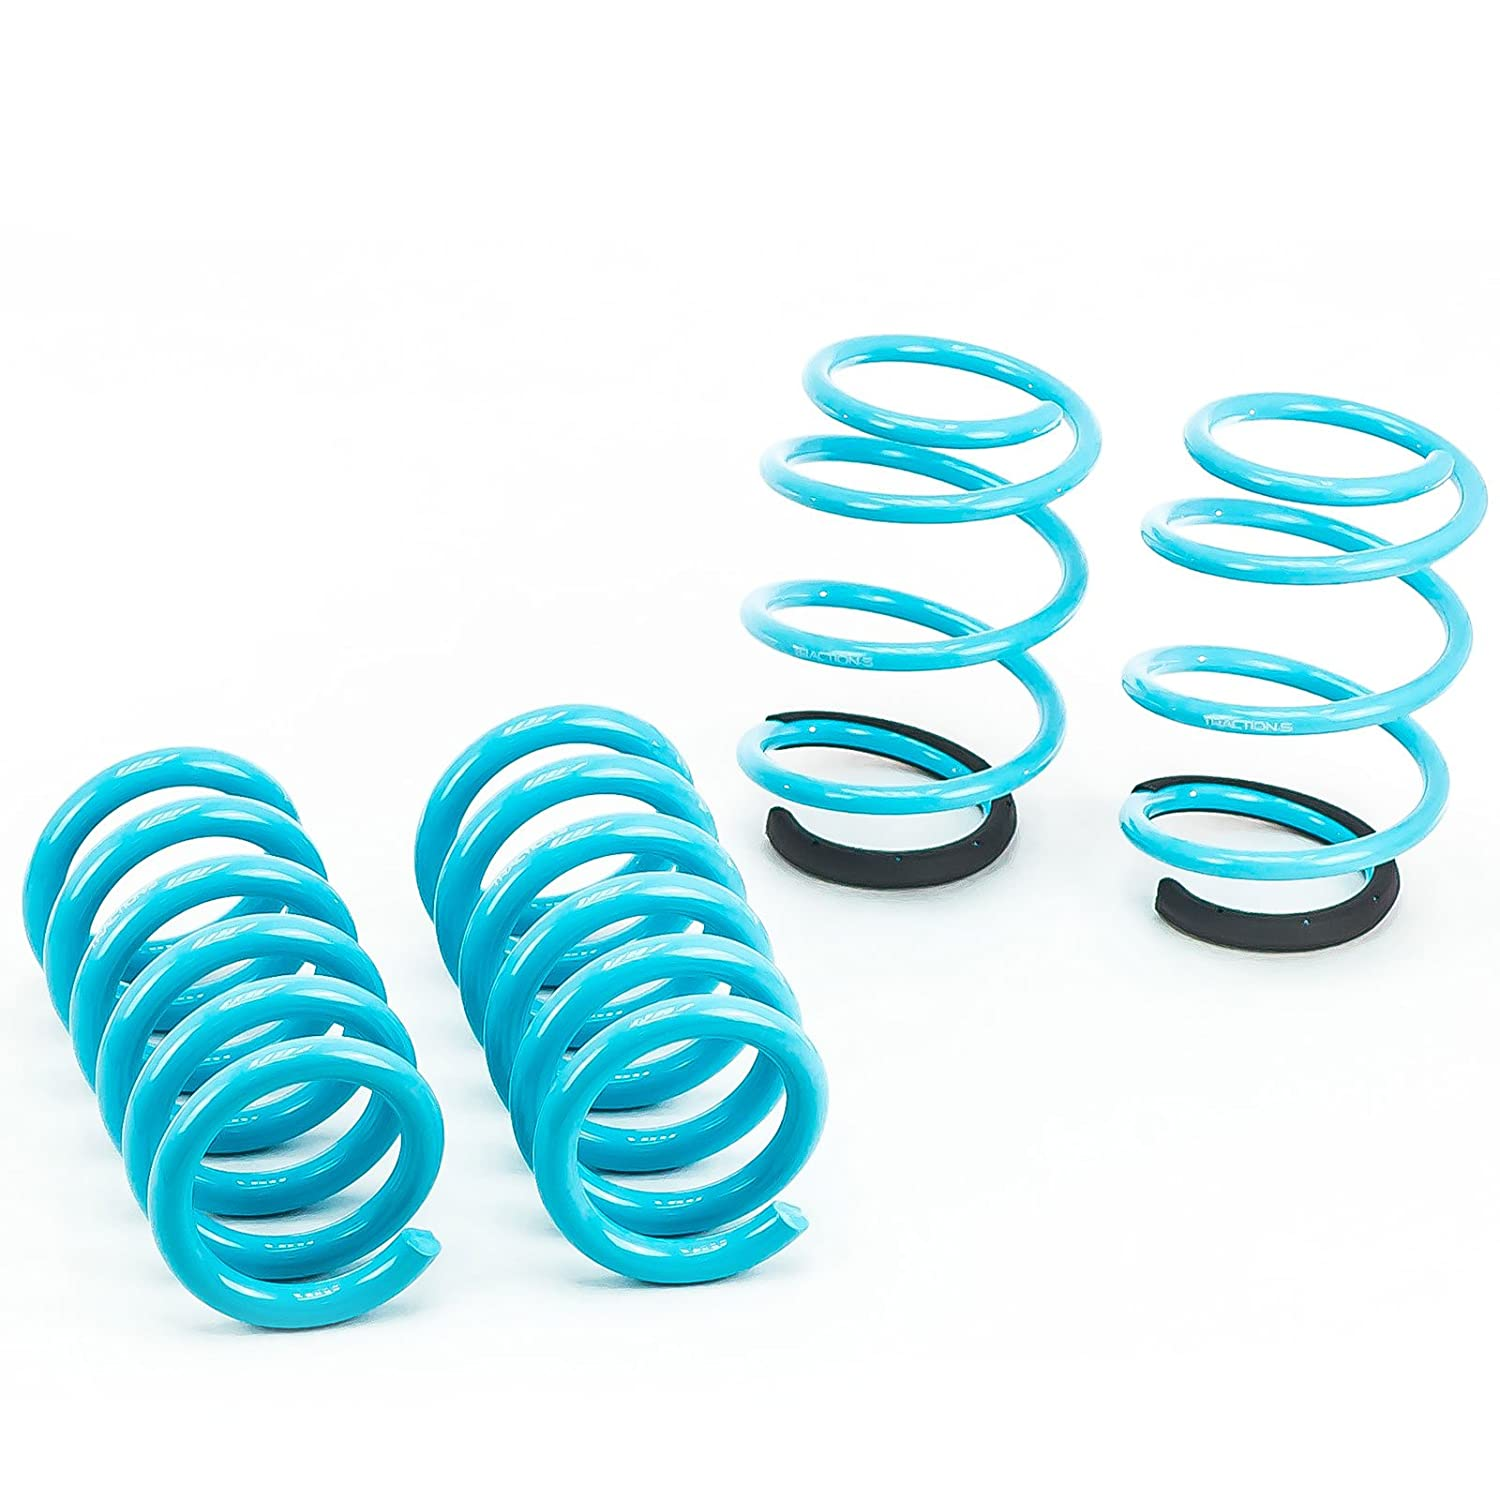 Godspeed LS-TS-FD-0004 Traction-S Performance Lowering Springs Reduce Body Roll Set of 4 Improved Handling